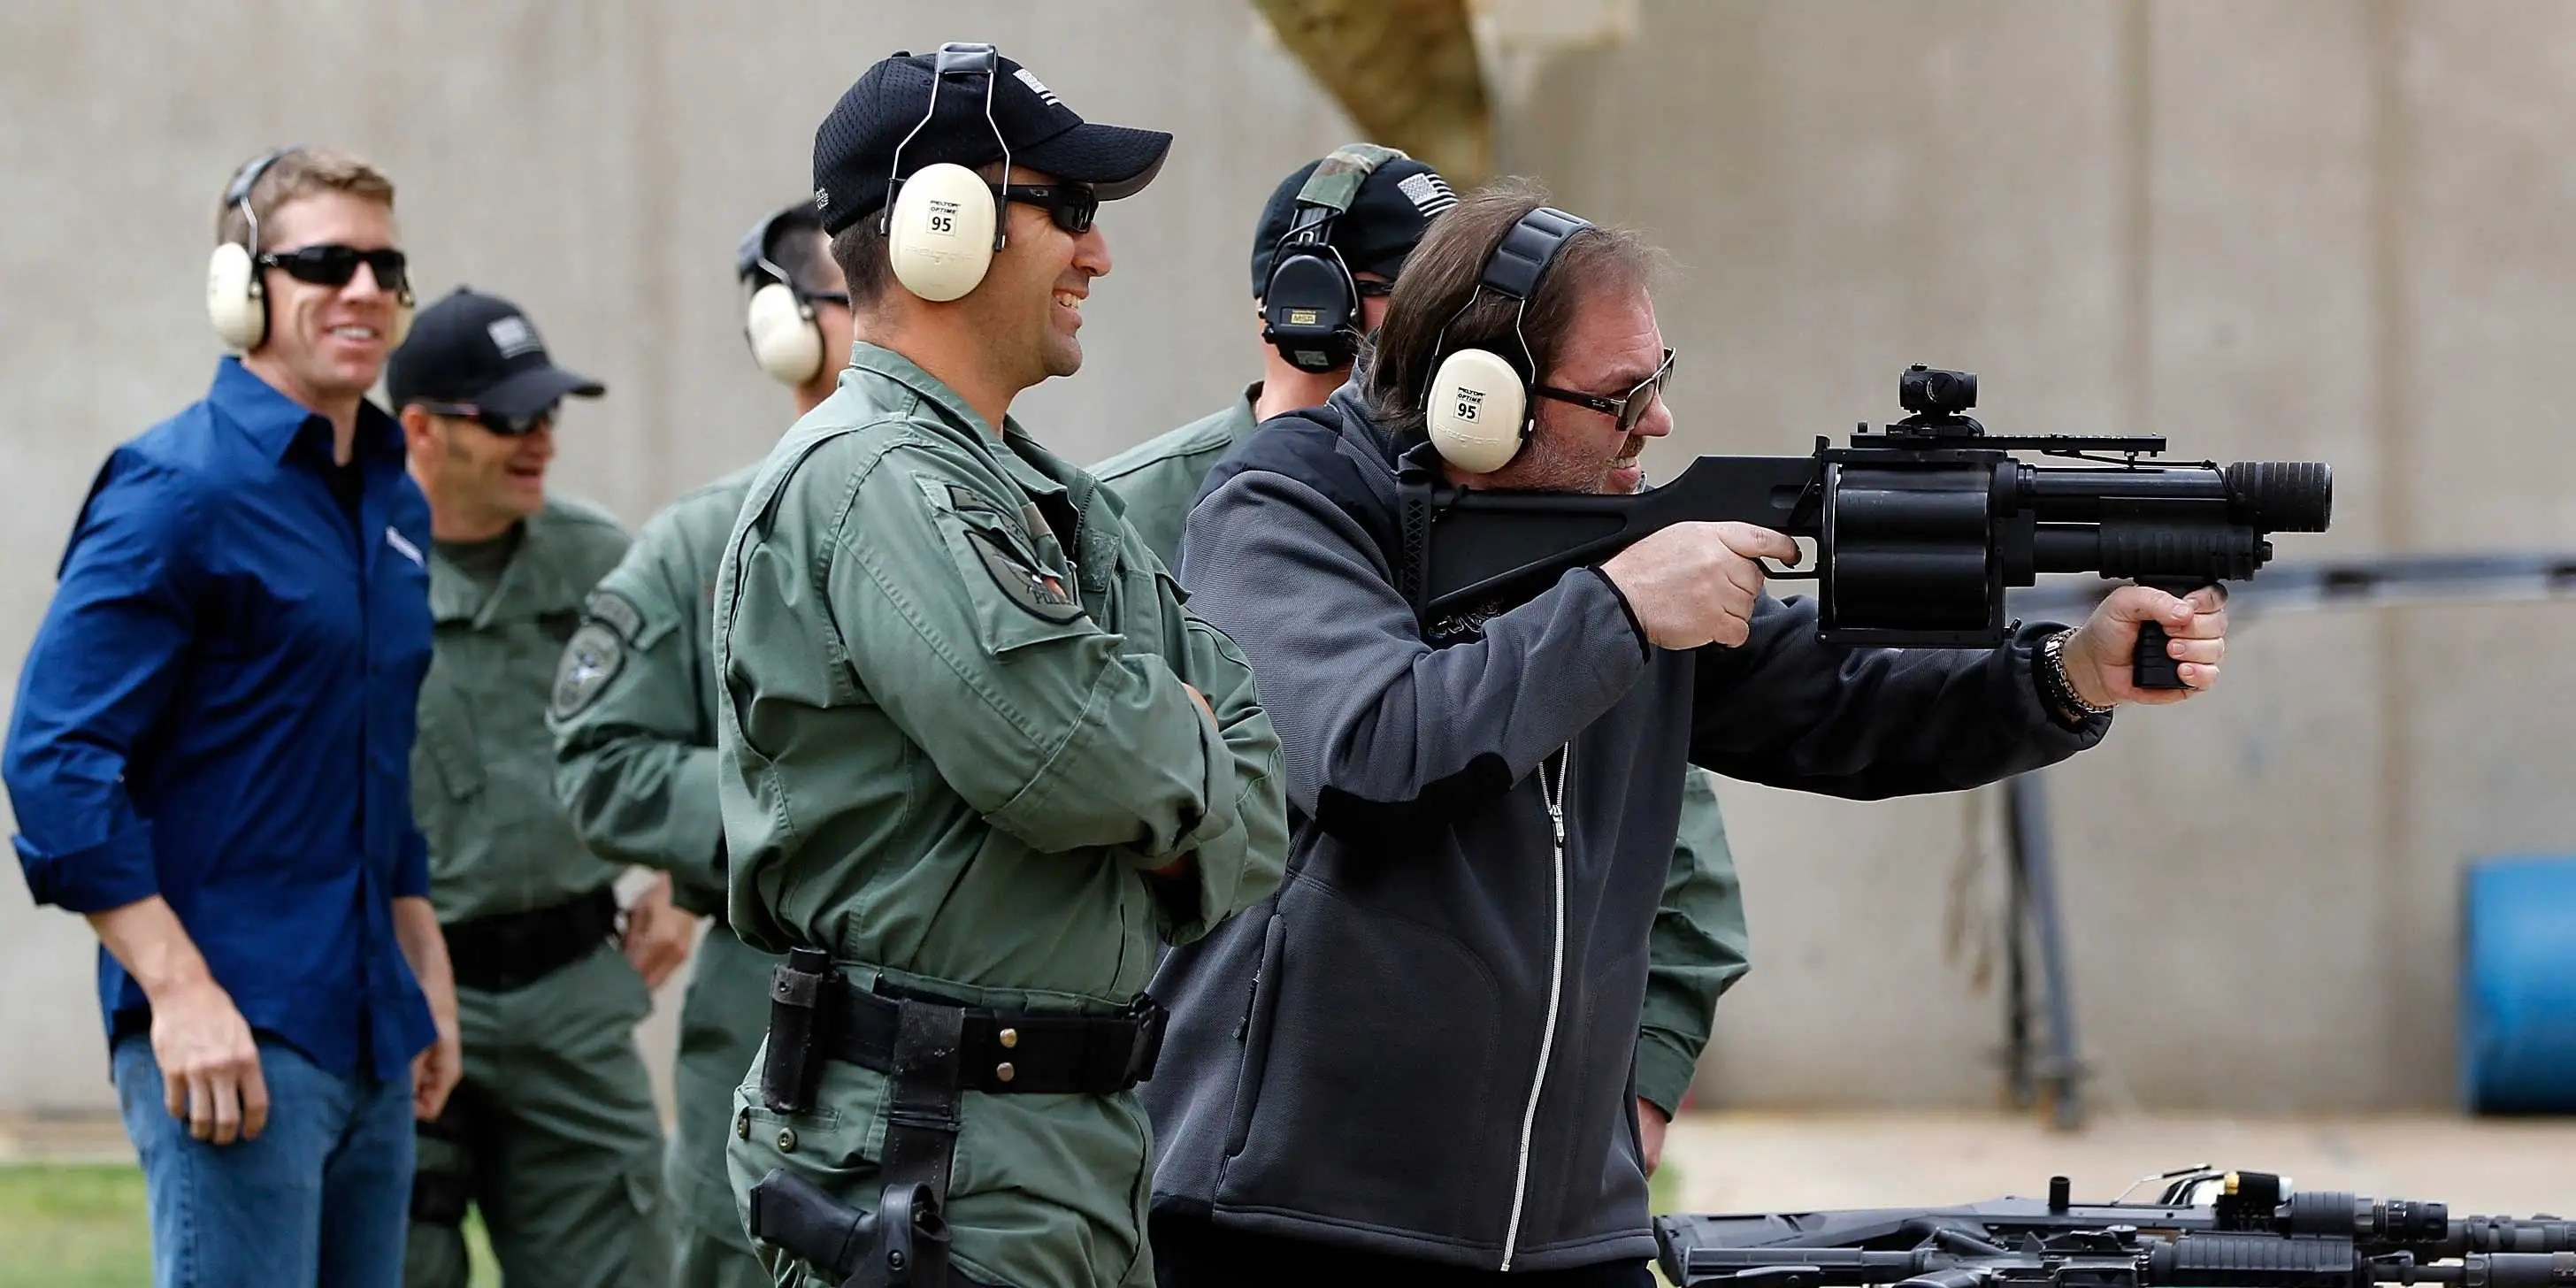 Pentagon Force Protection Agency Swat